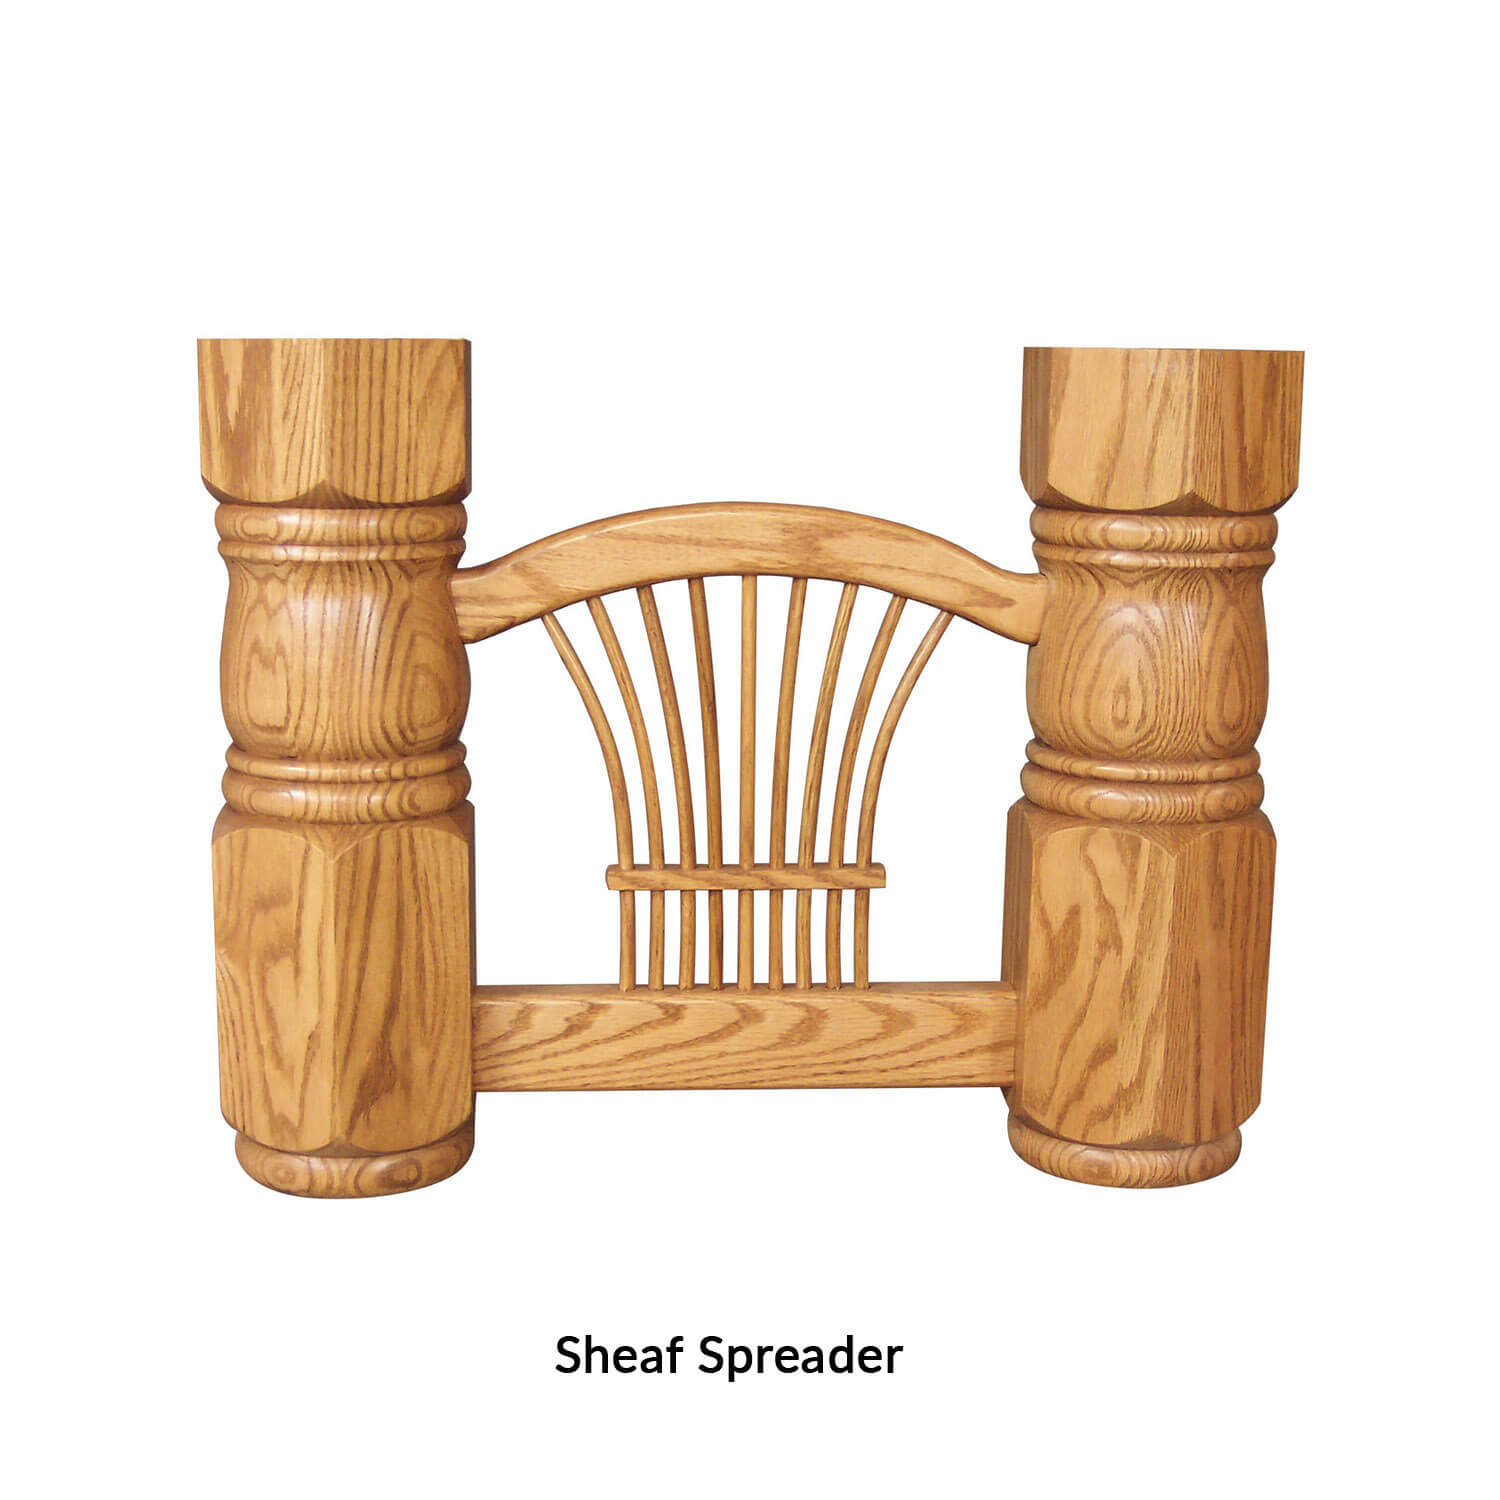 7.1-sheaf-spreader.jpg